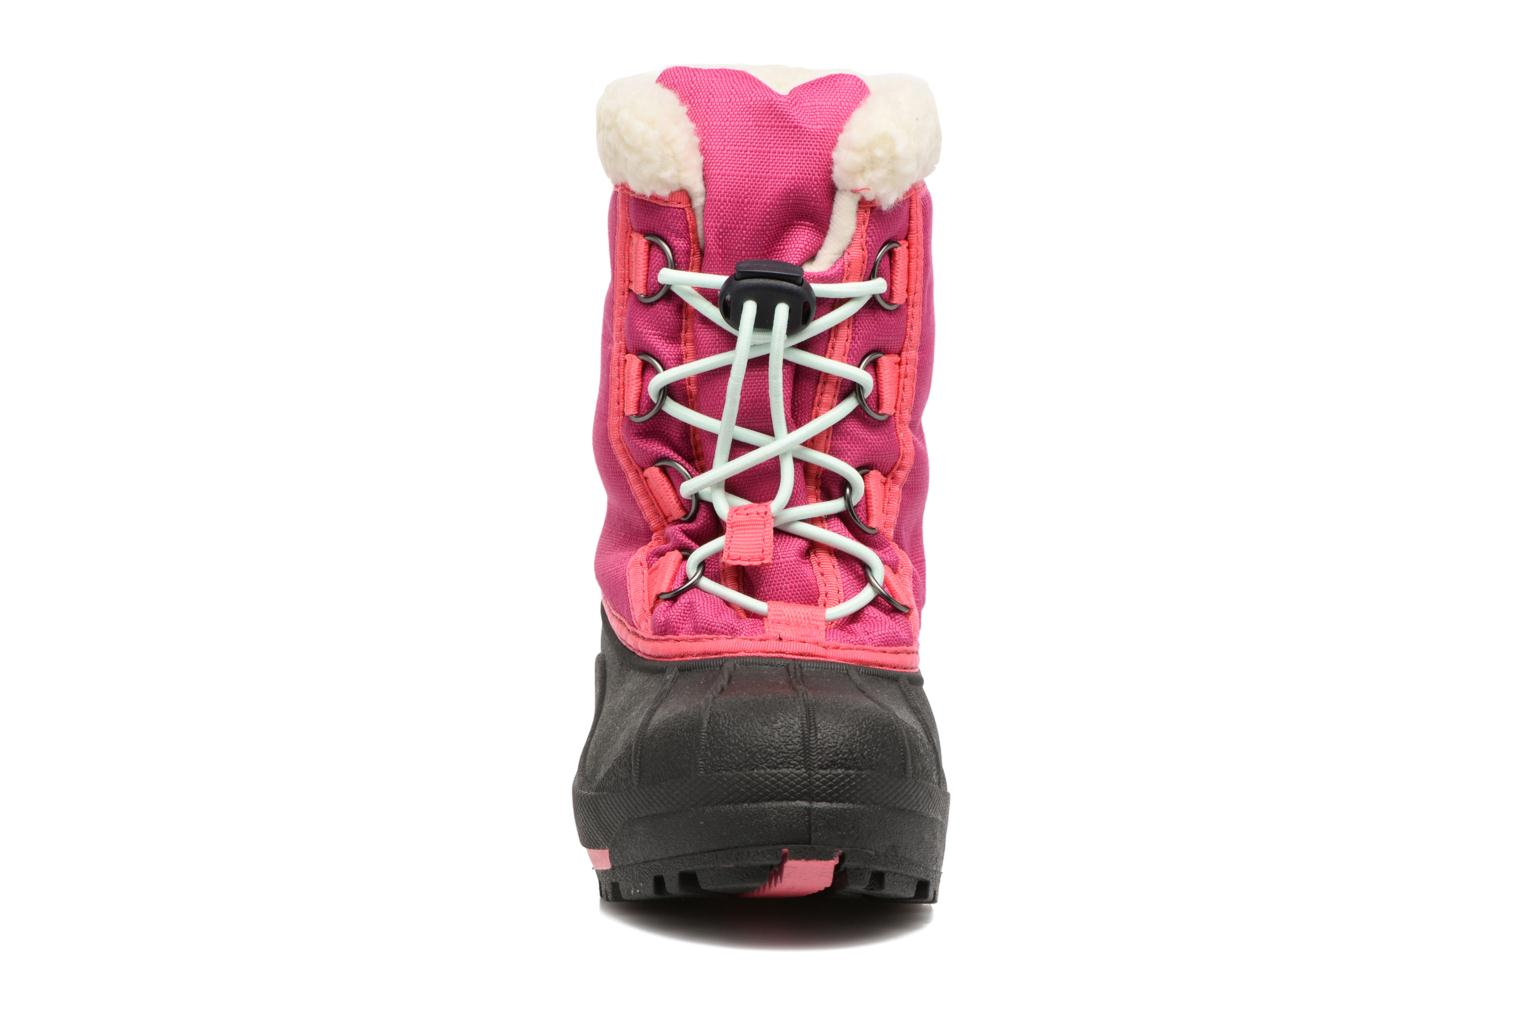 Bottes Sorel Youth Cumberland Rose vue portées chaussures